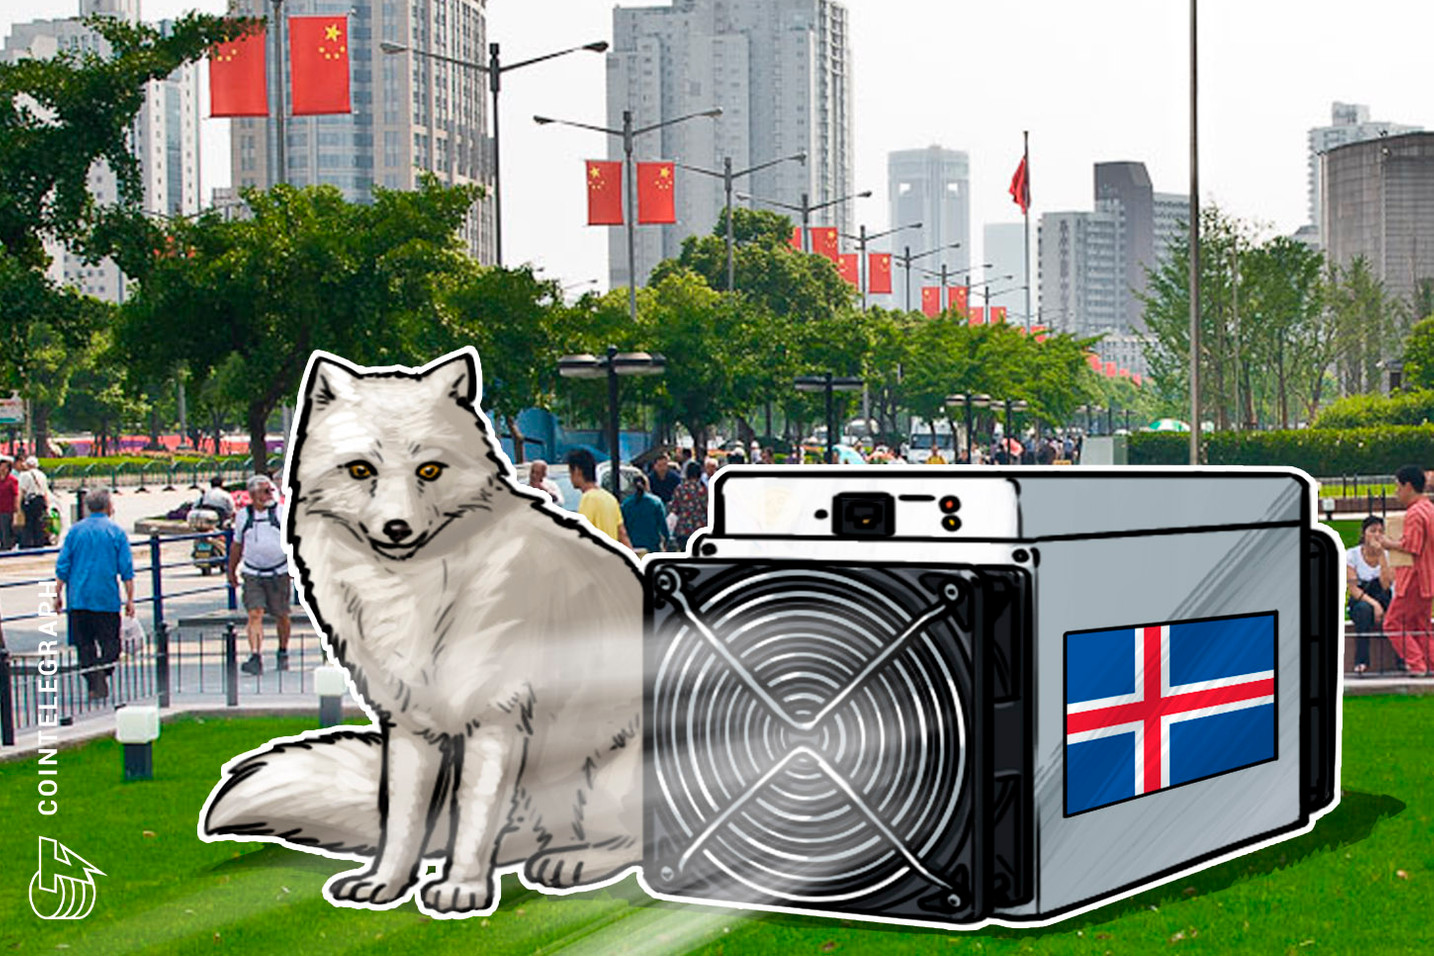 600 Stolen Bitcoin Miners From Icelandic Heist Suspected To Be In China